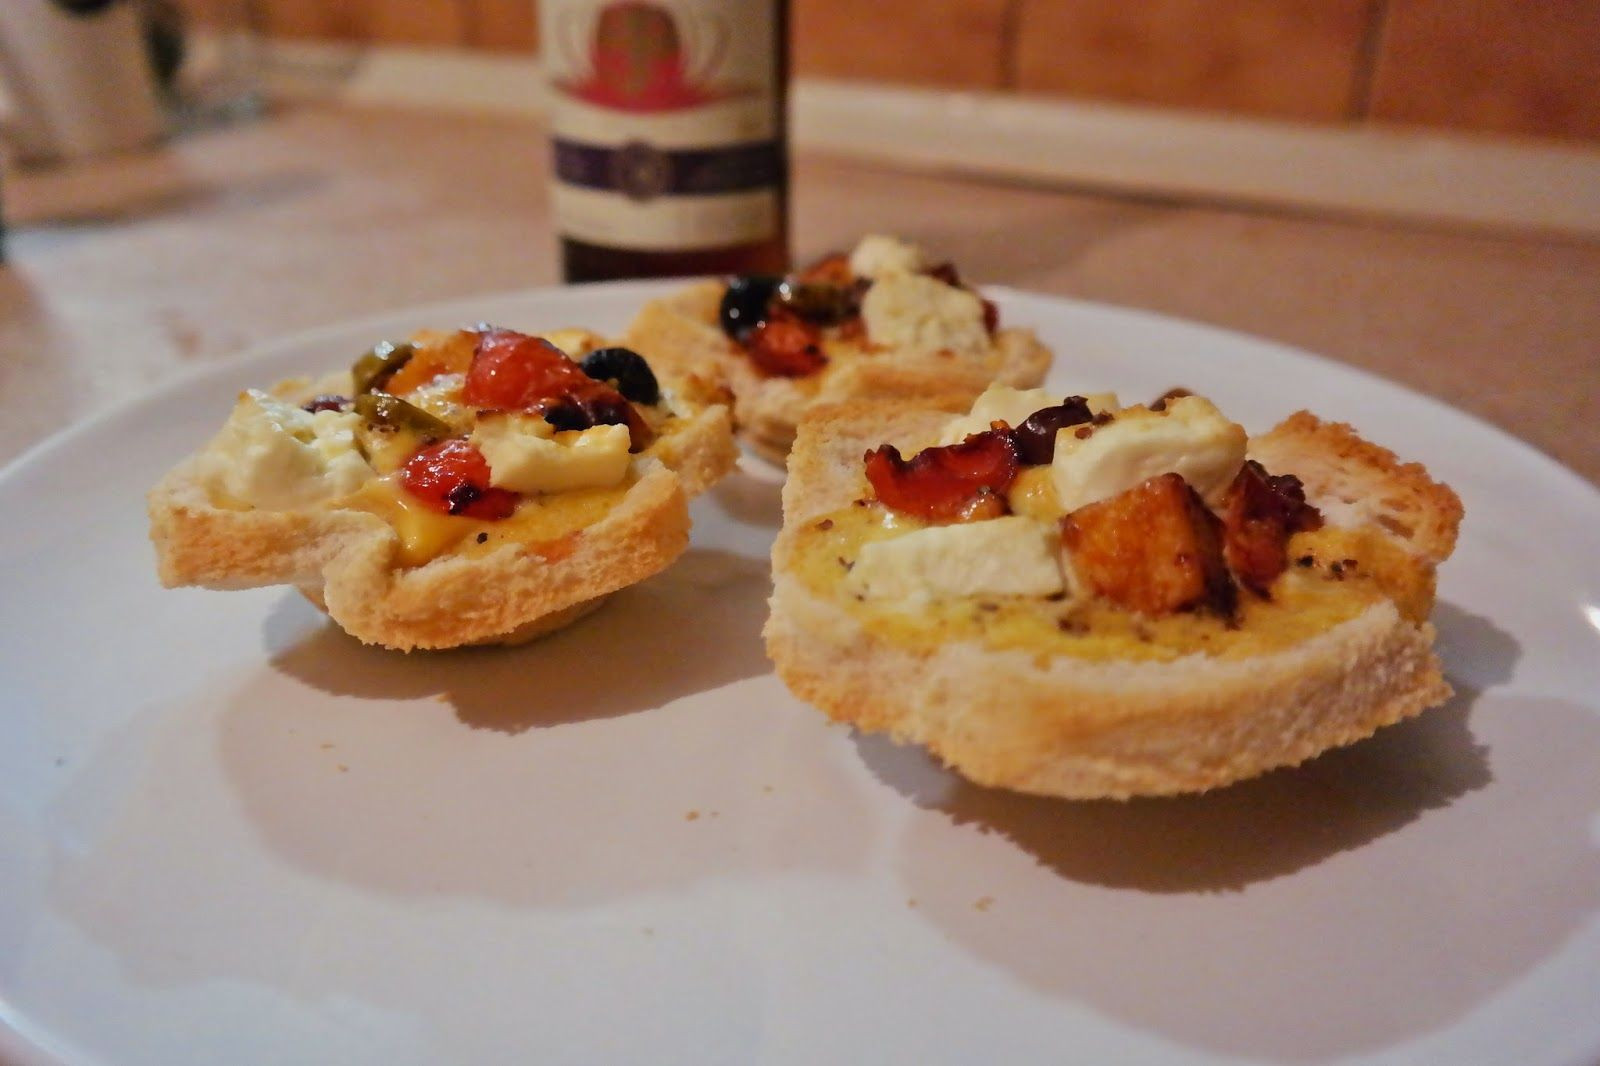 Eggy bread muffins with quorn and olives (I really don't know what to call this creation!)